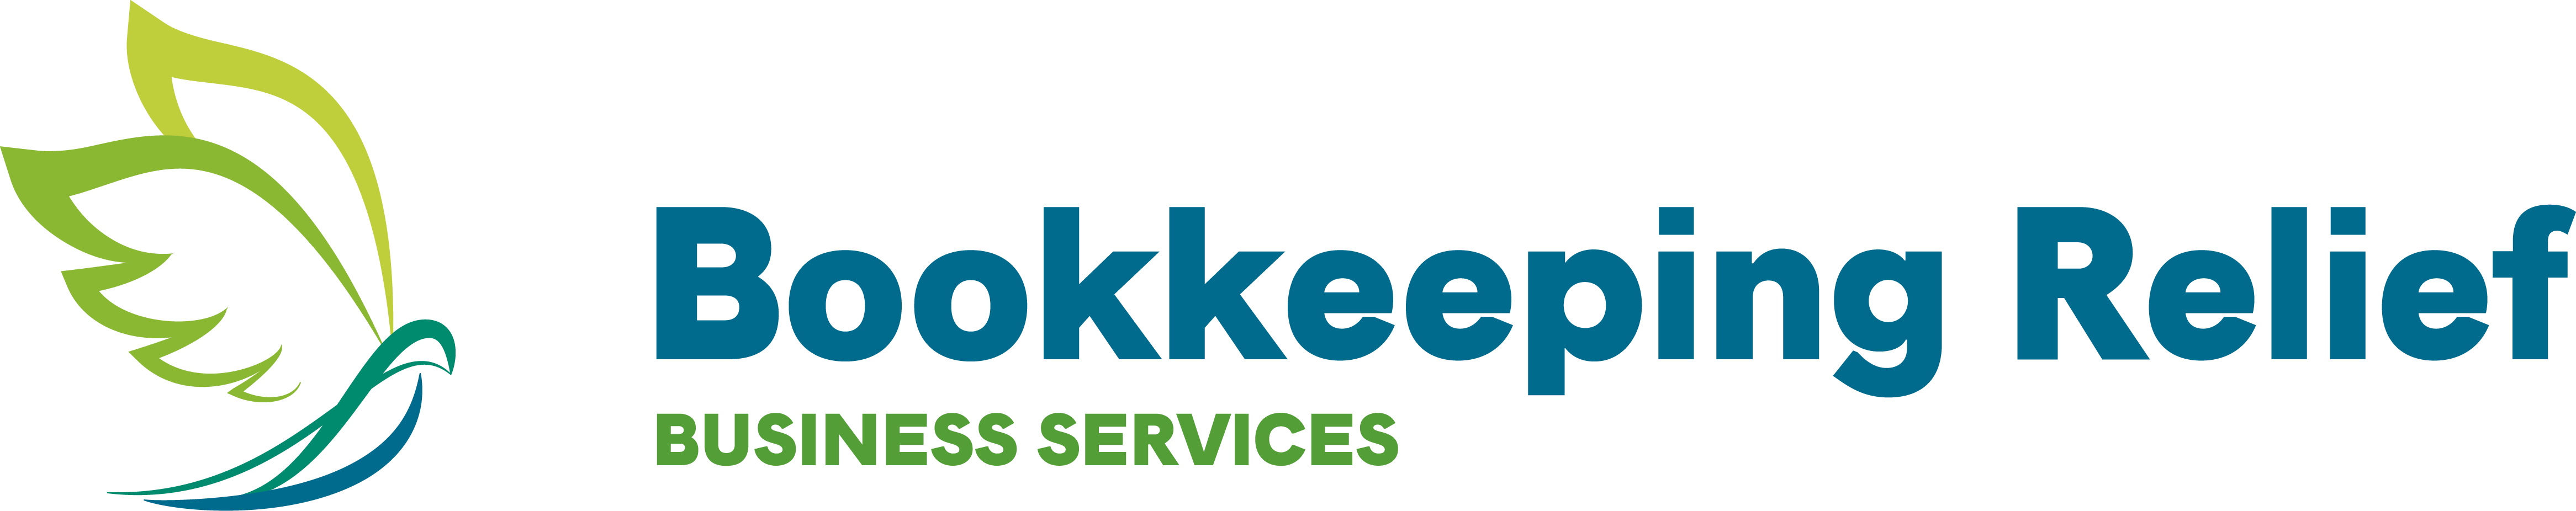 Bookkeeping Relief Business Services